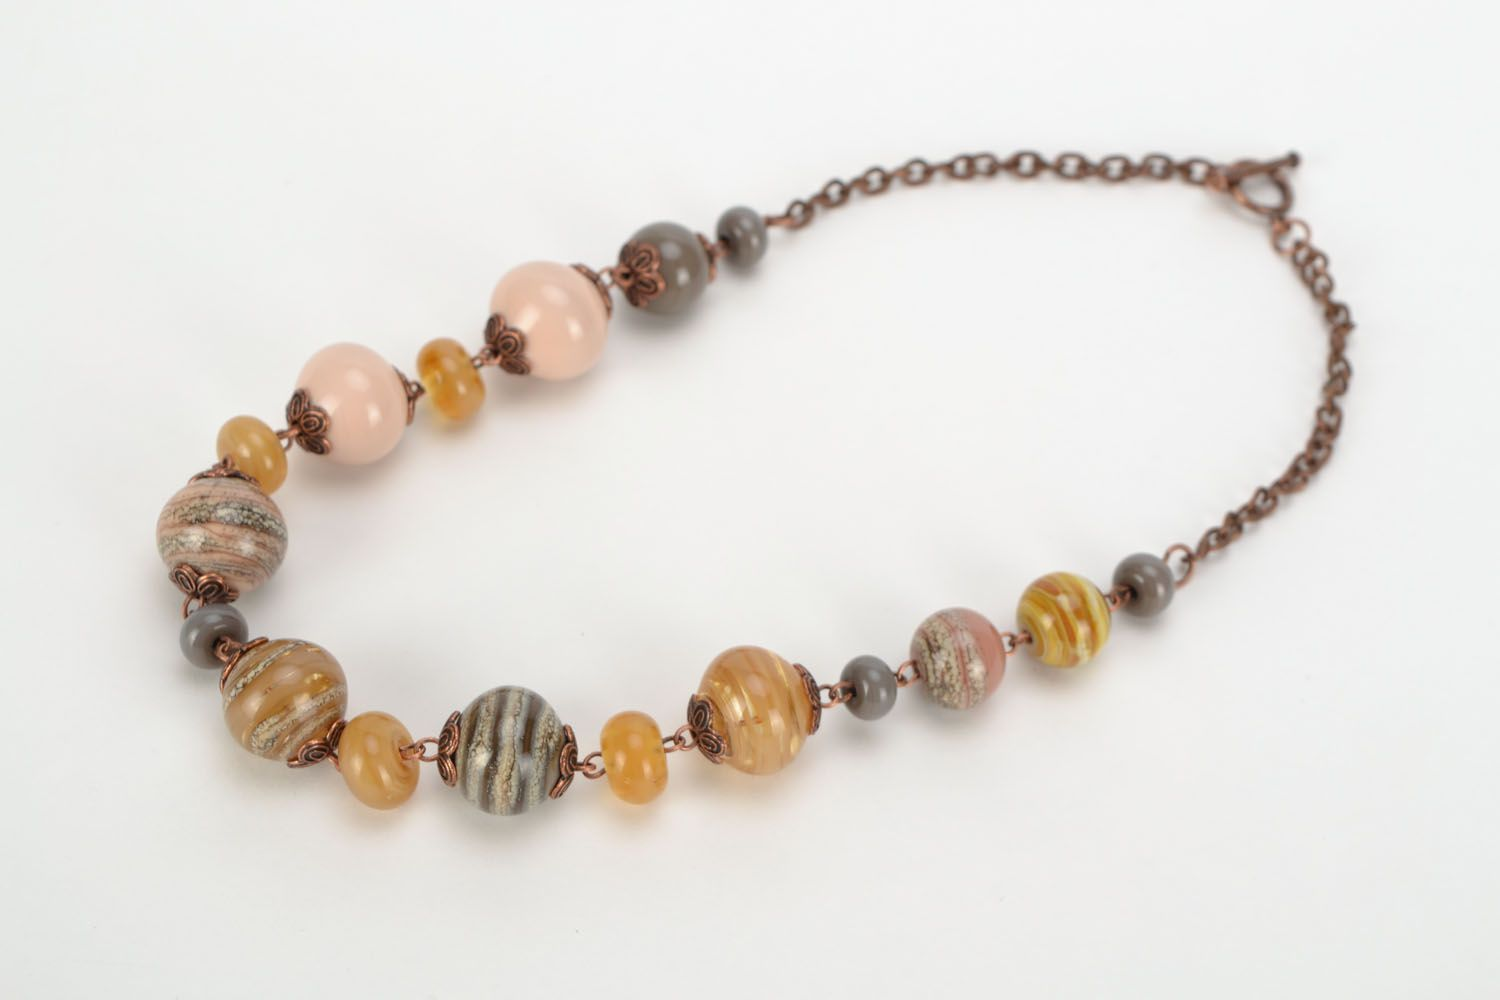 Lampwork glass bead necklace photo 3